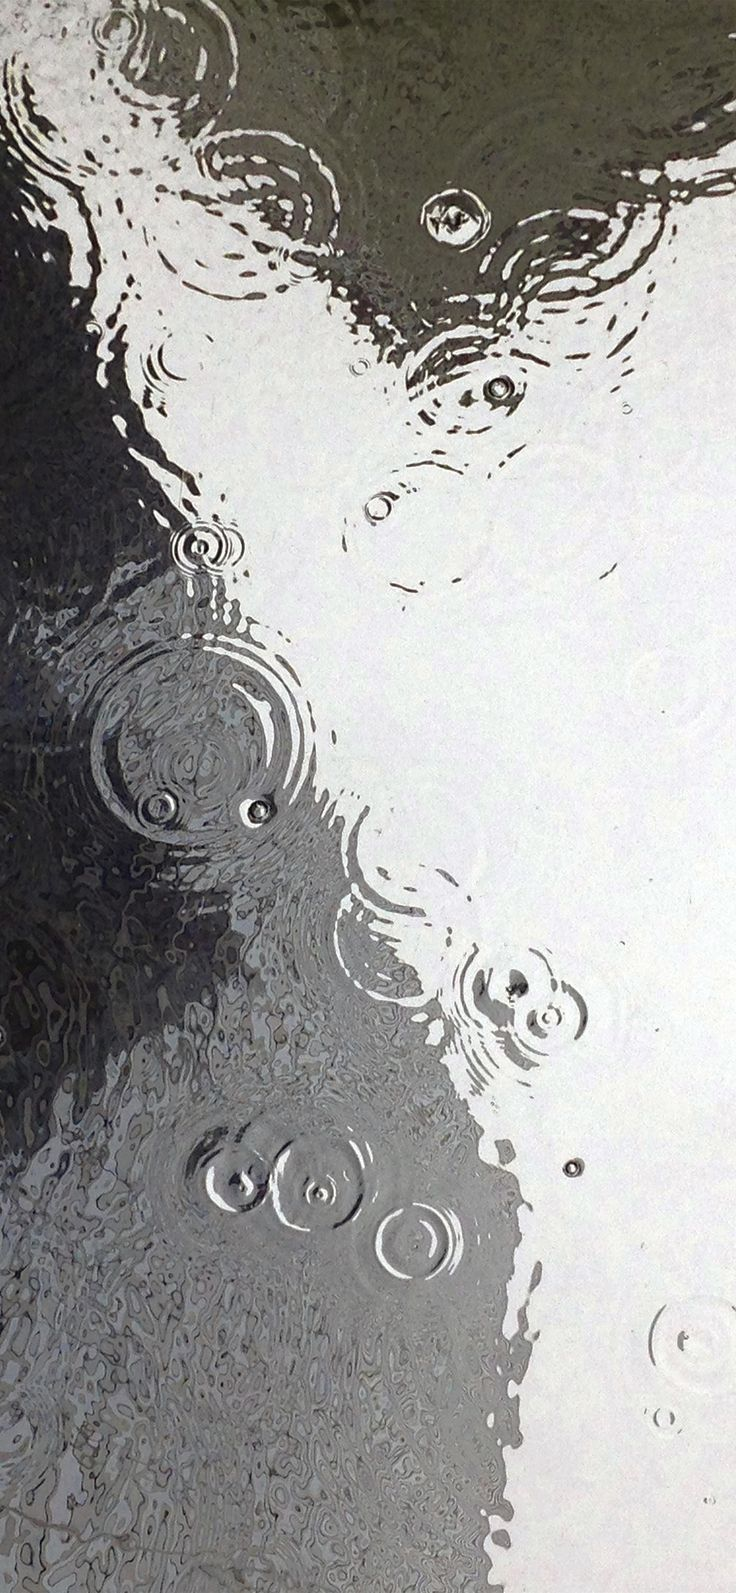 Iphone X Wallpaper ni05raindropdaycitybokehnature